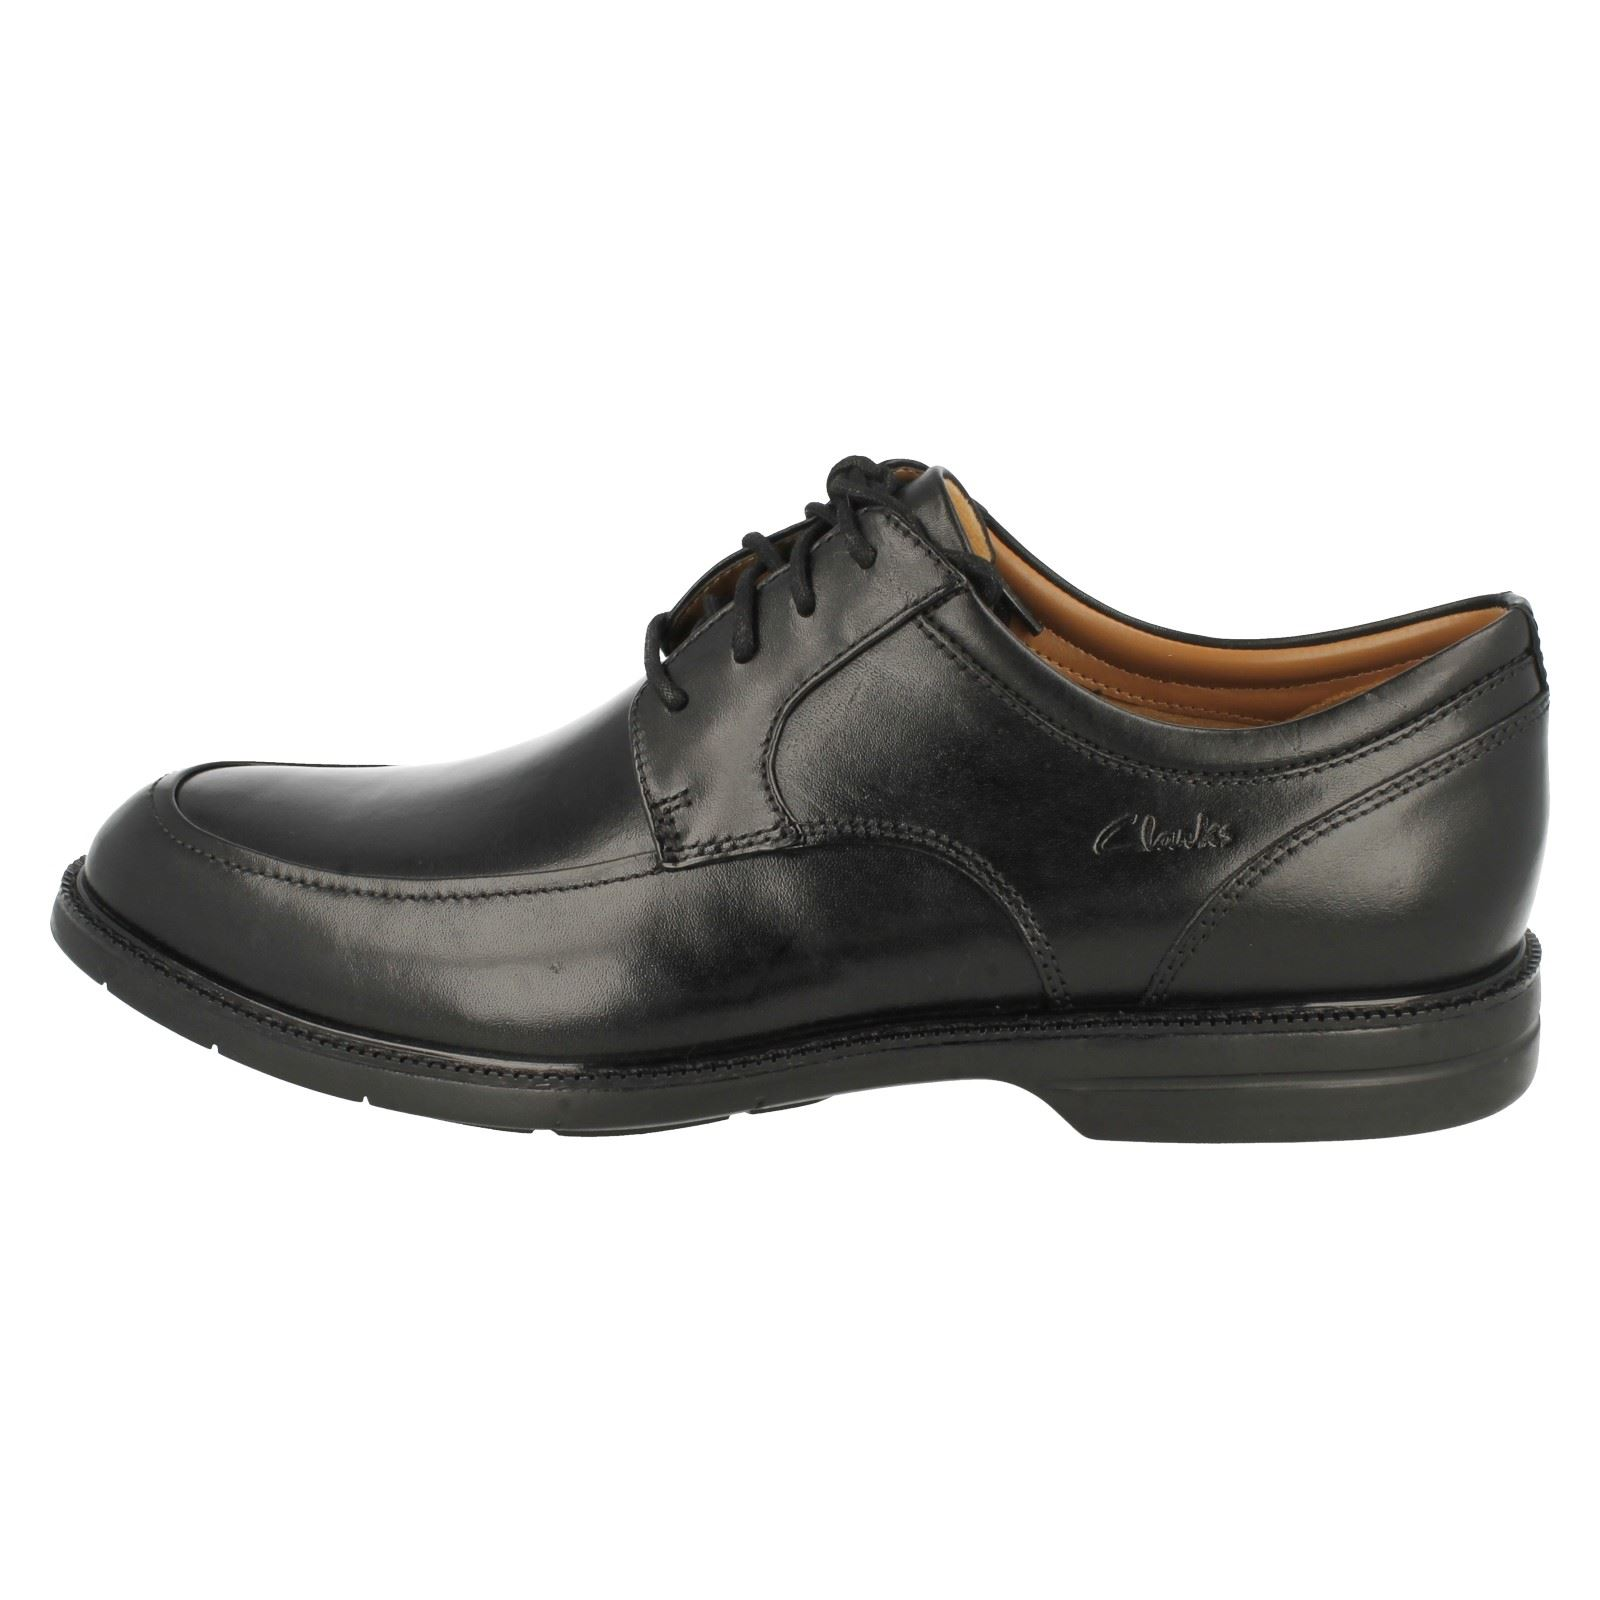 Uomo Clarks Formal Lace Lace Lace Up Schuhes 'Bilton Walk' 752952